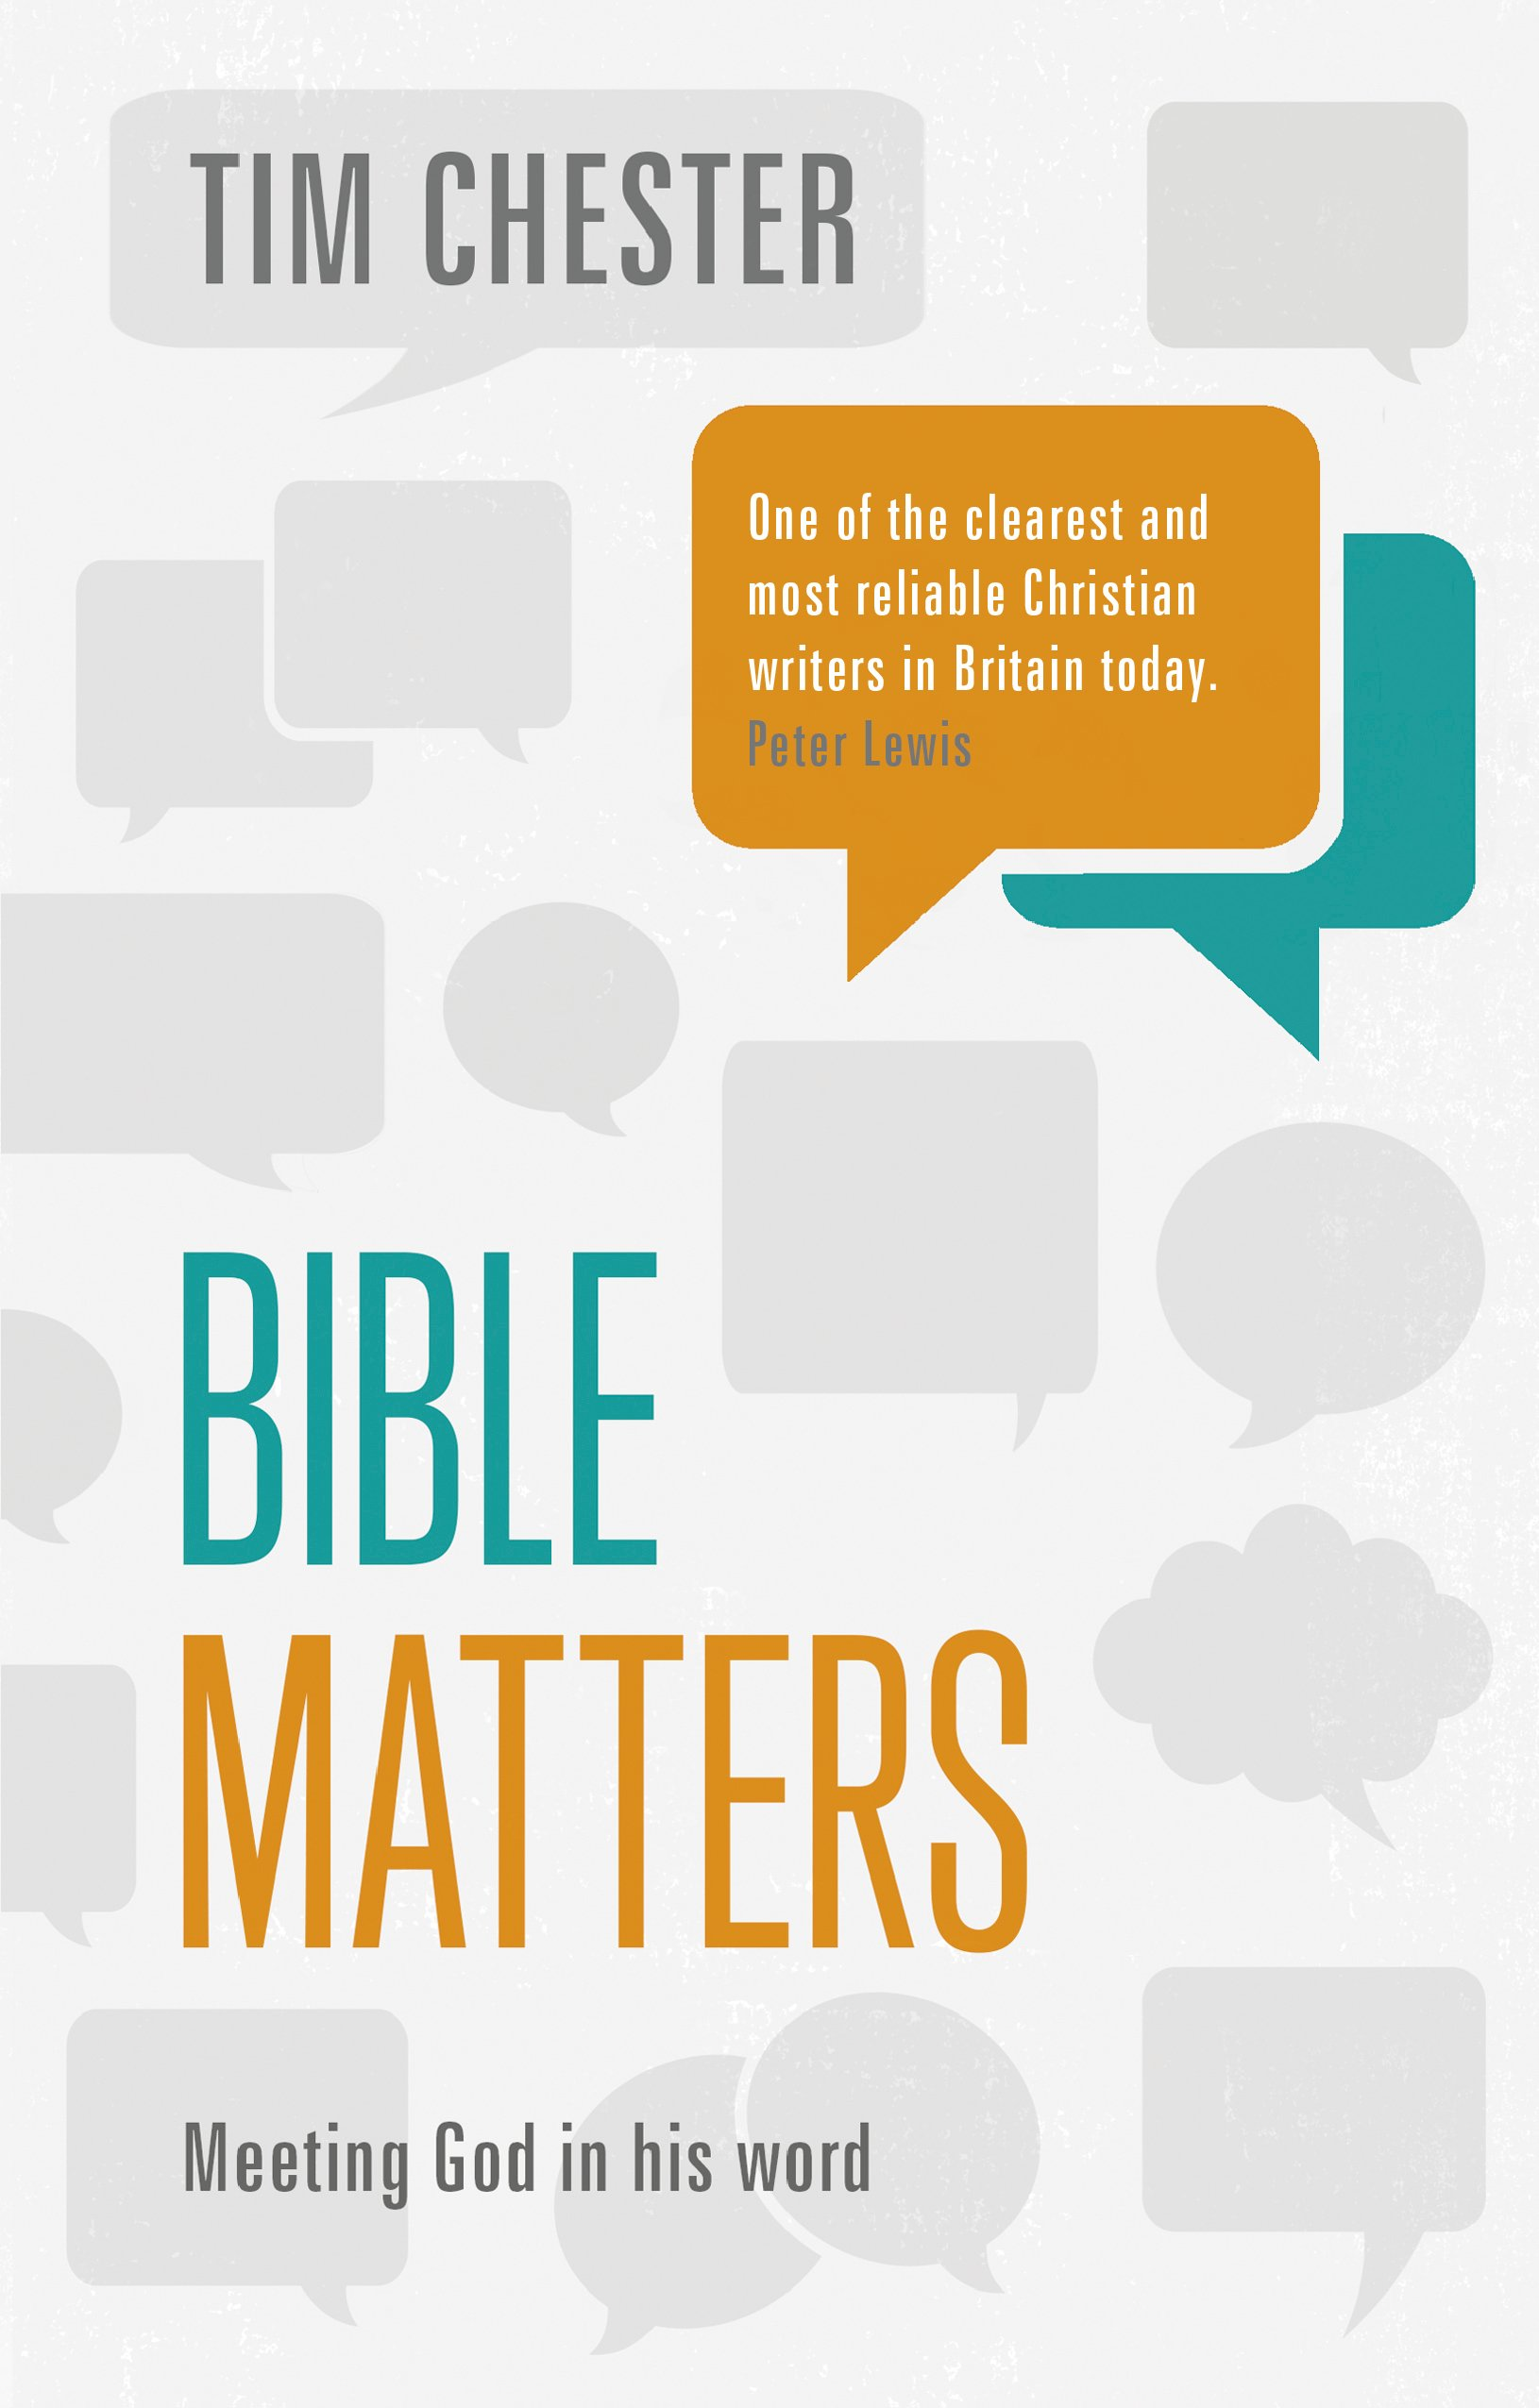 More information on Bible Matters Meeting God in His Word